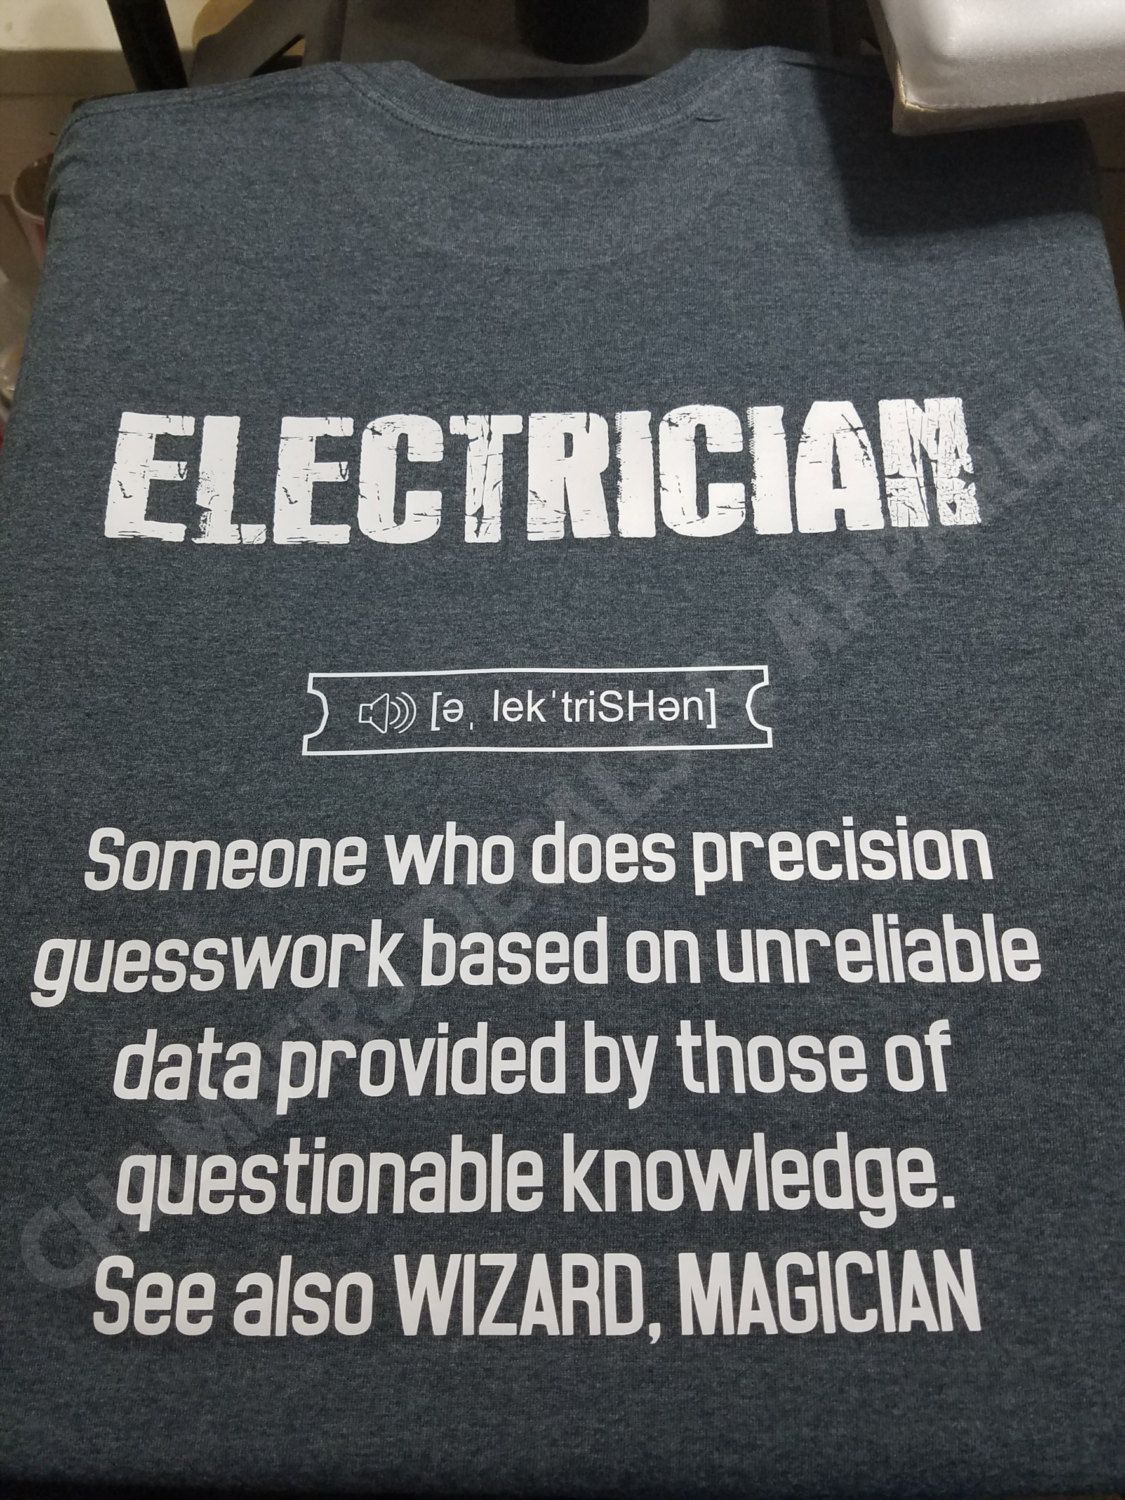 Electrician Quotes Would Make A Great Christmas Gift For An Electrician With A Sense Of .